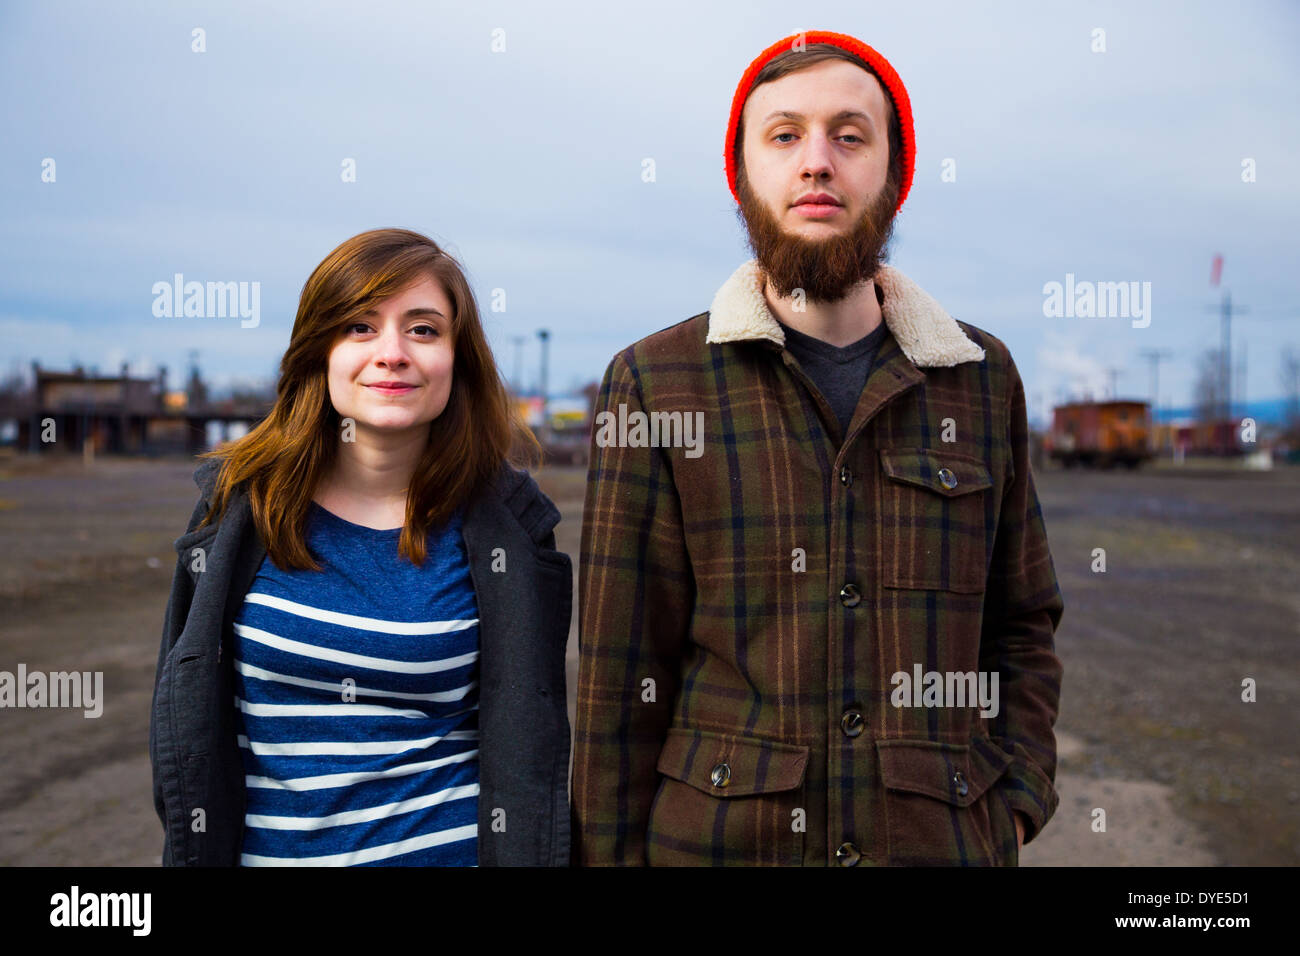 Modern, trendy, hipster couple in an abandoned train yard at dusk in this fashion style portrait. - Stock Image